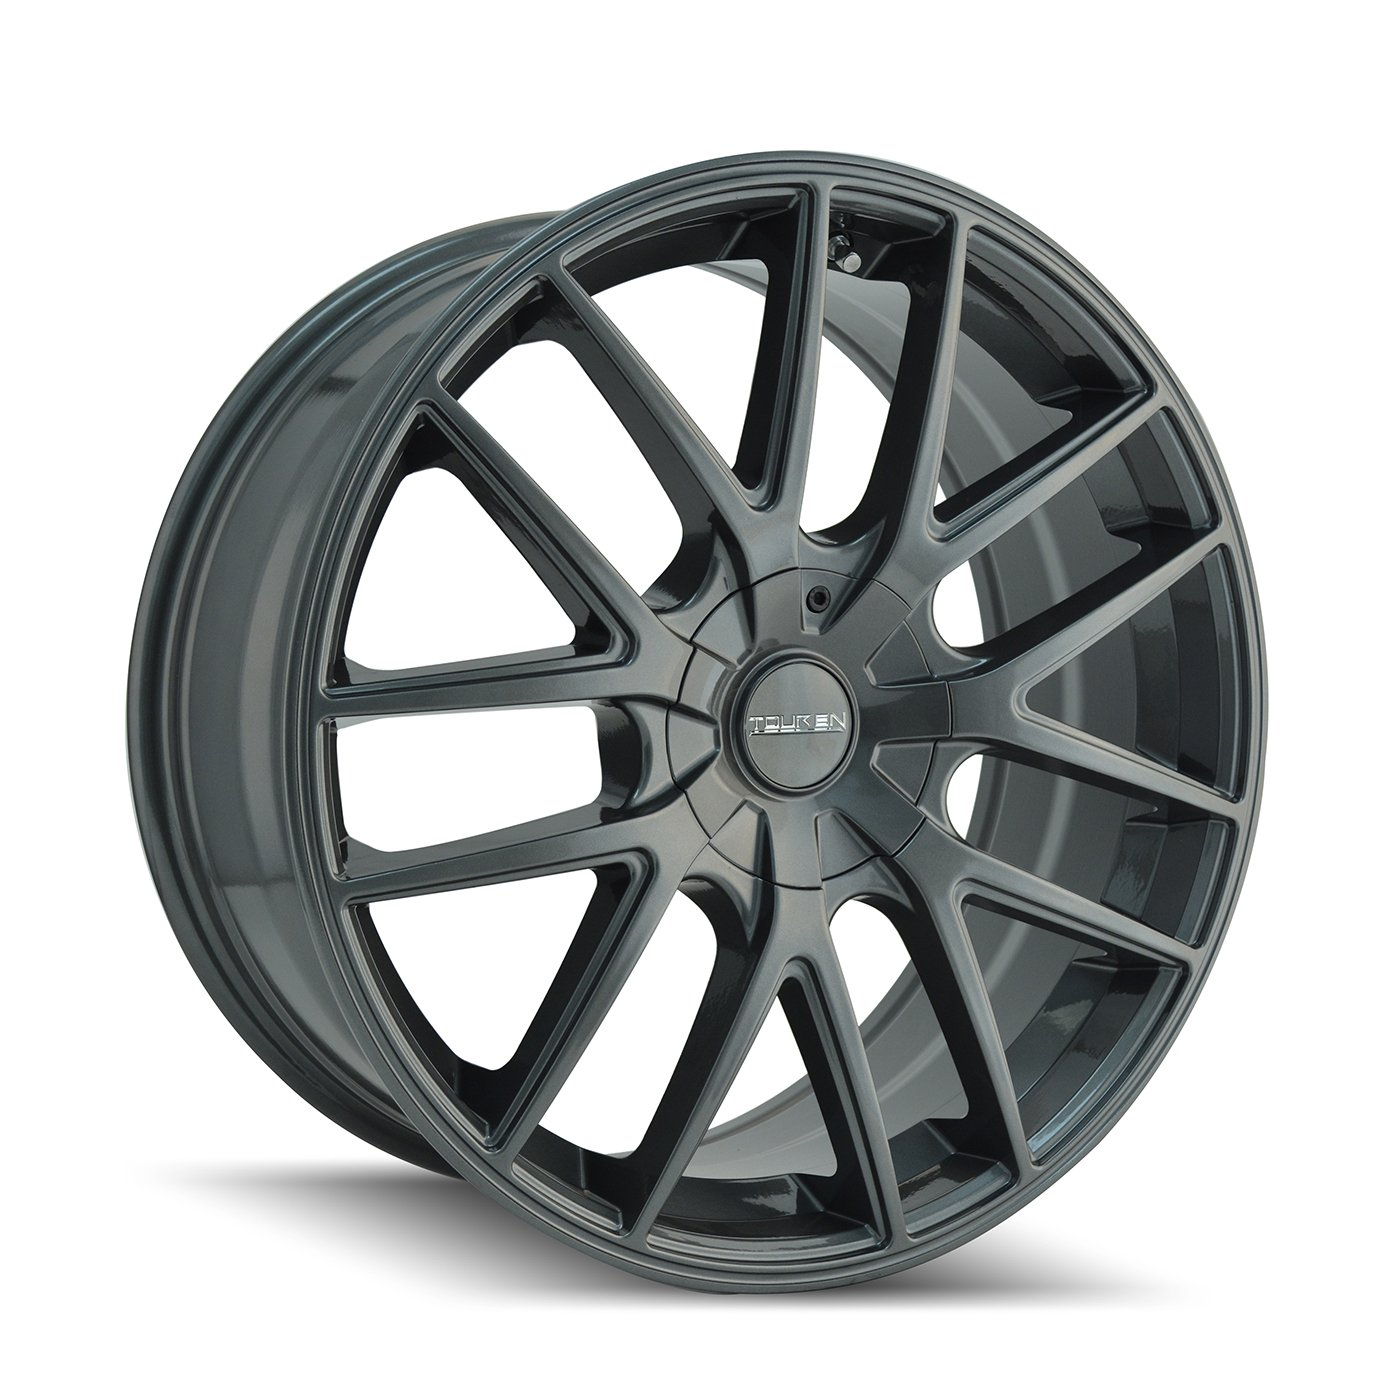 Touren 3260-6720G TR60 Wheel with Gunmetal Finish (16x7'/4x108mm)